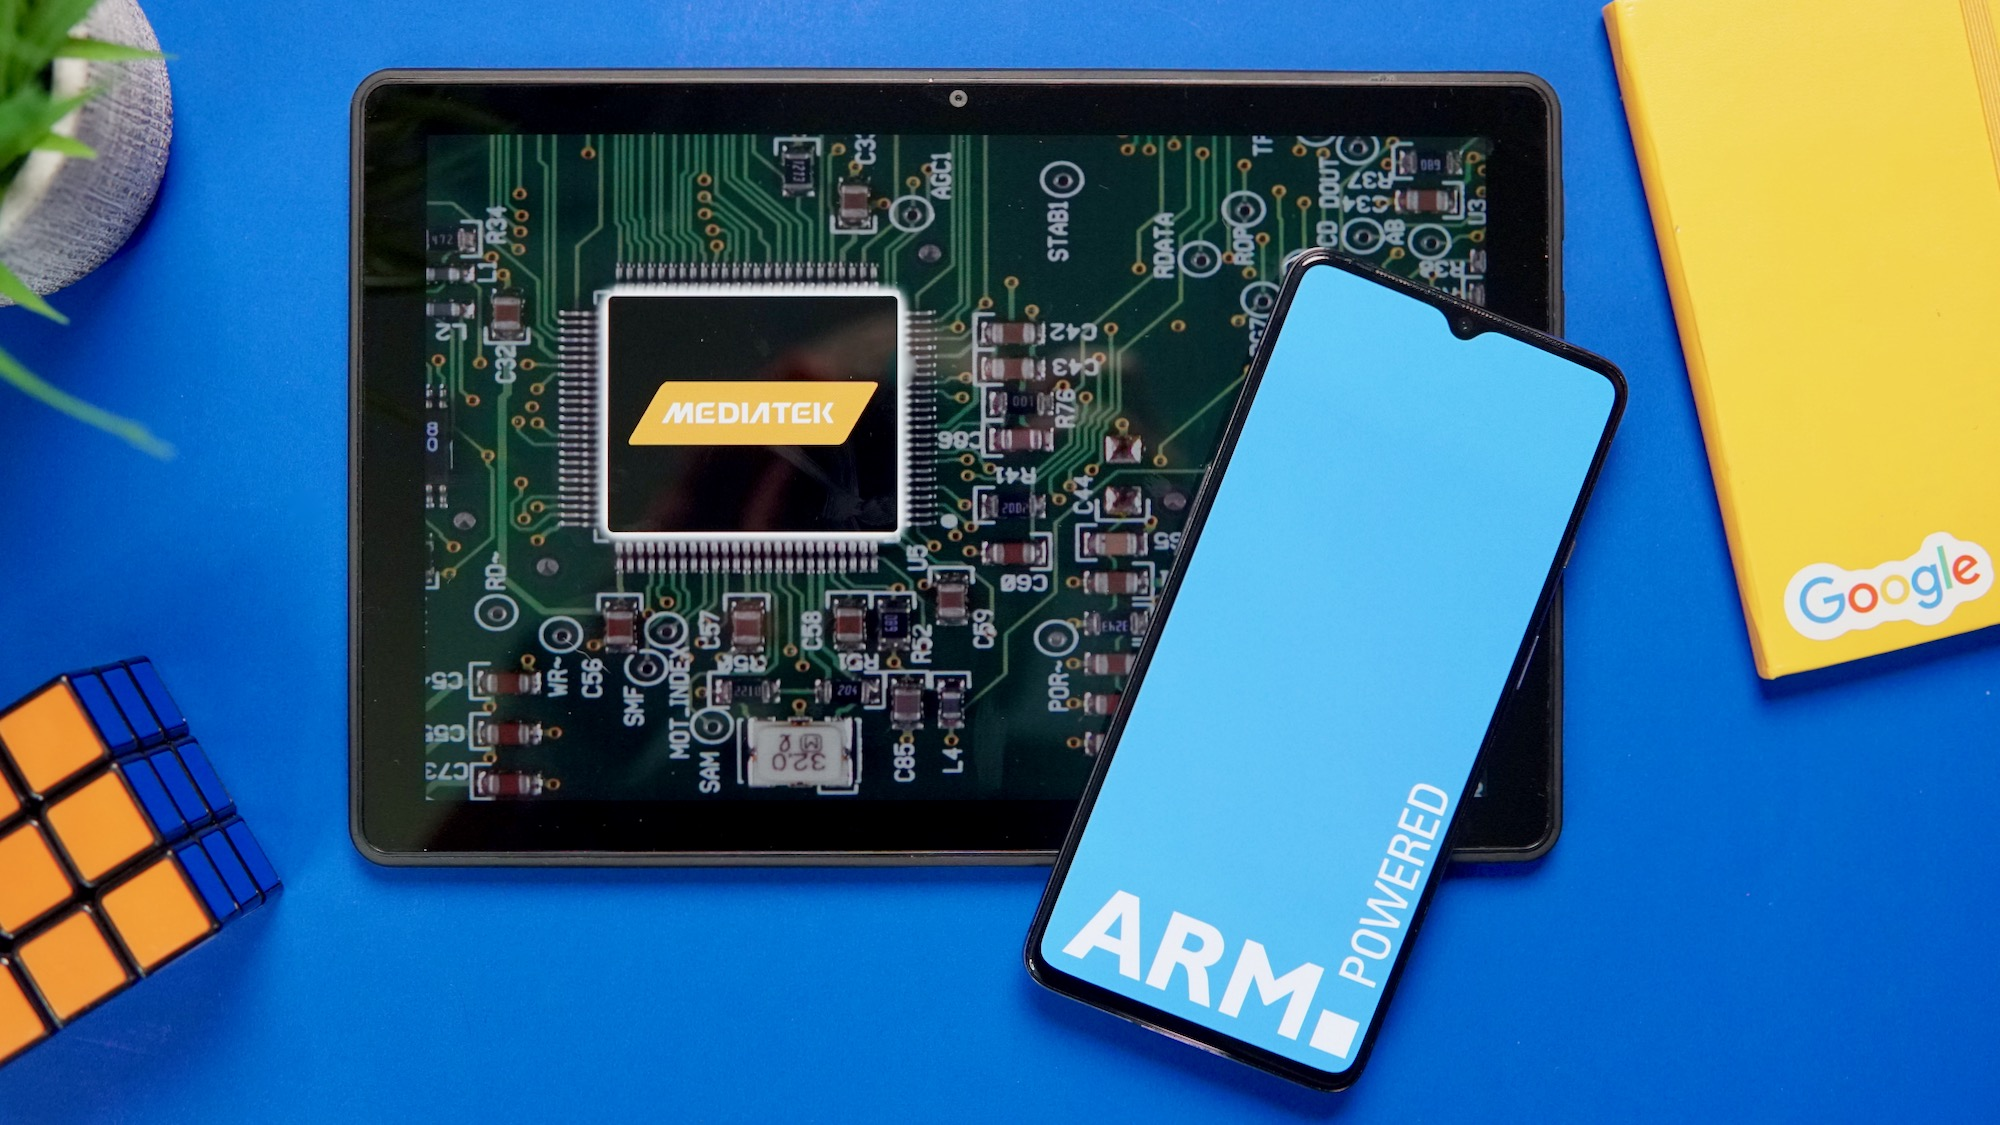 MediaTek's rise to #1 in the ARM silicon race is good news for Chromebooks